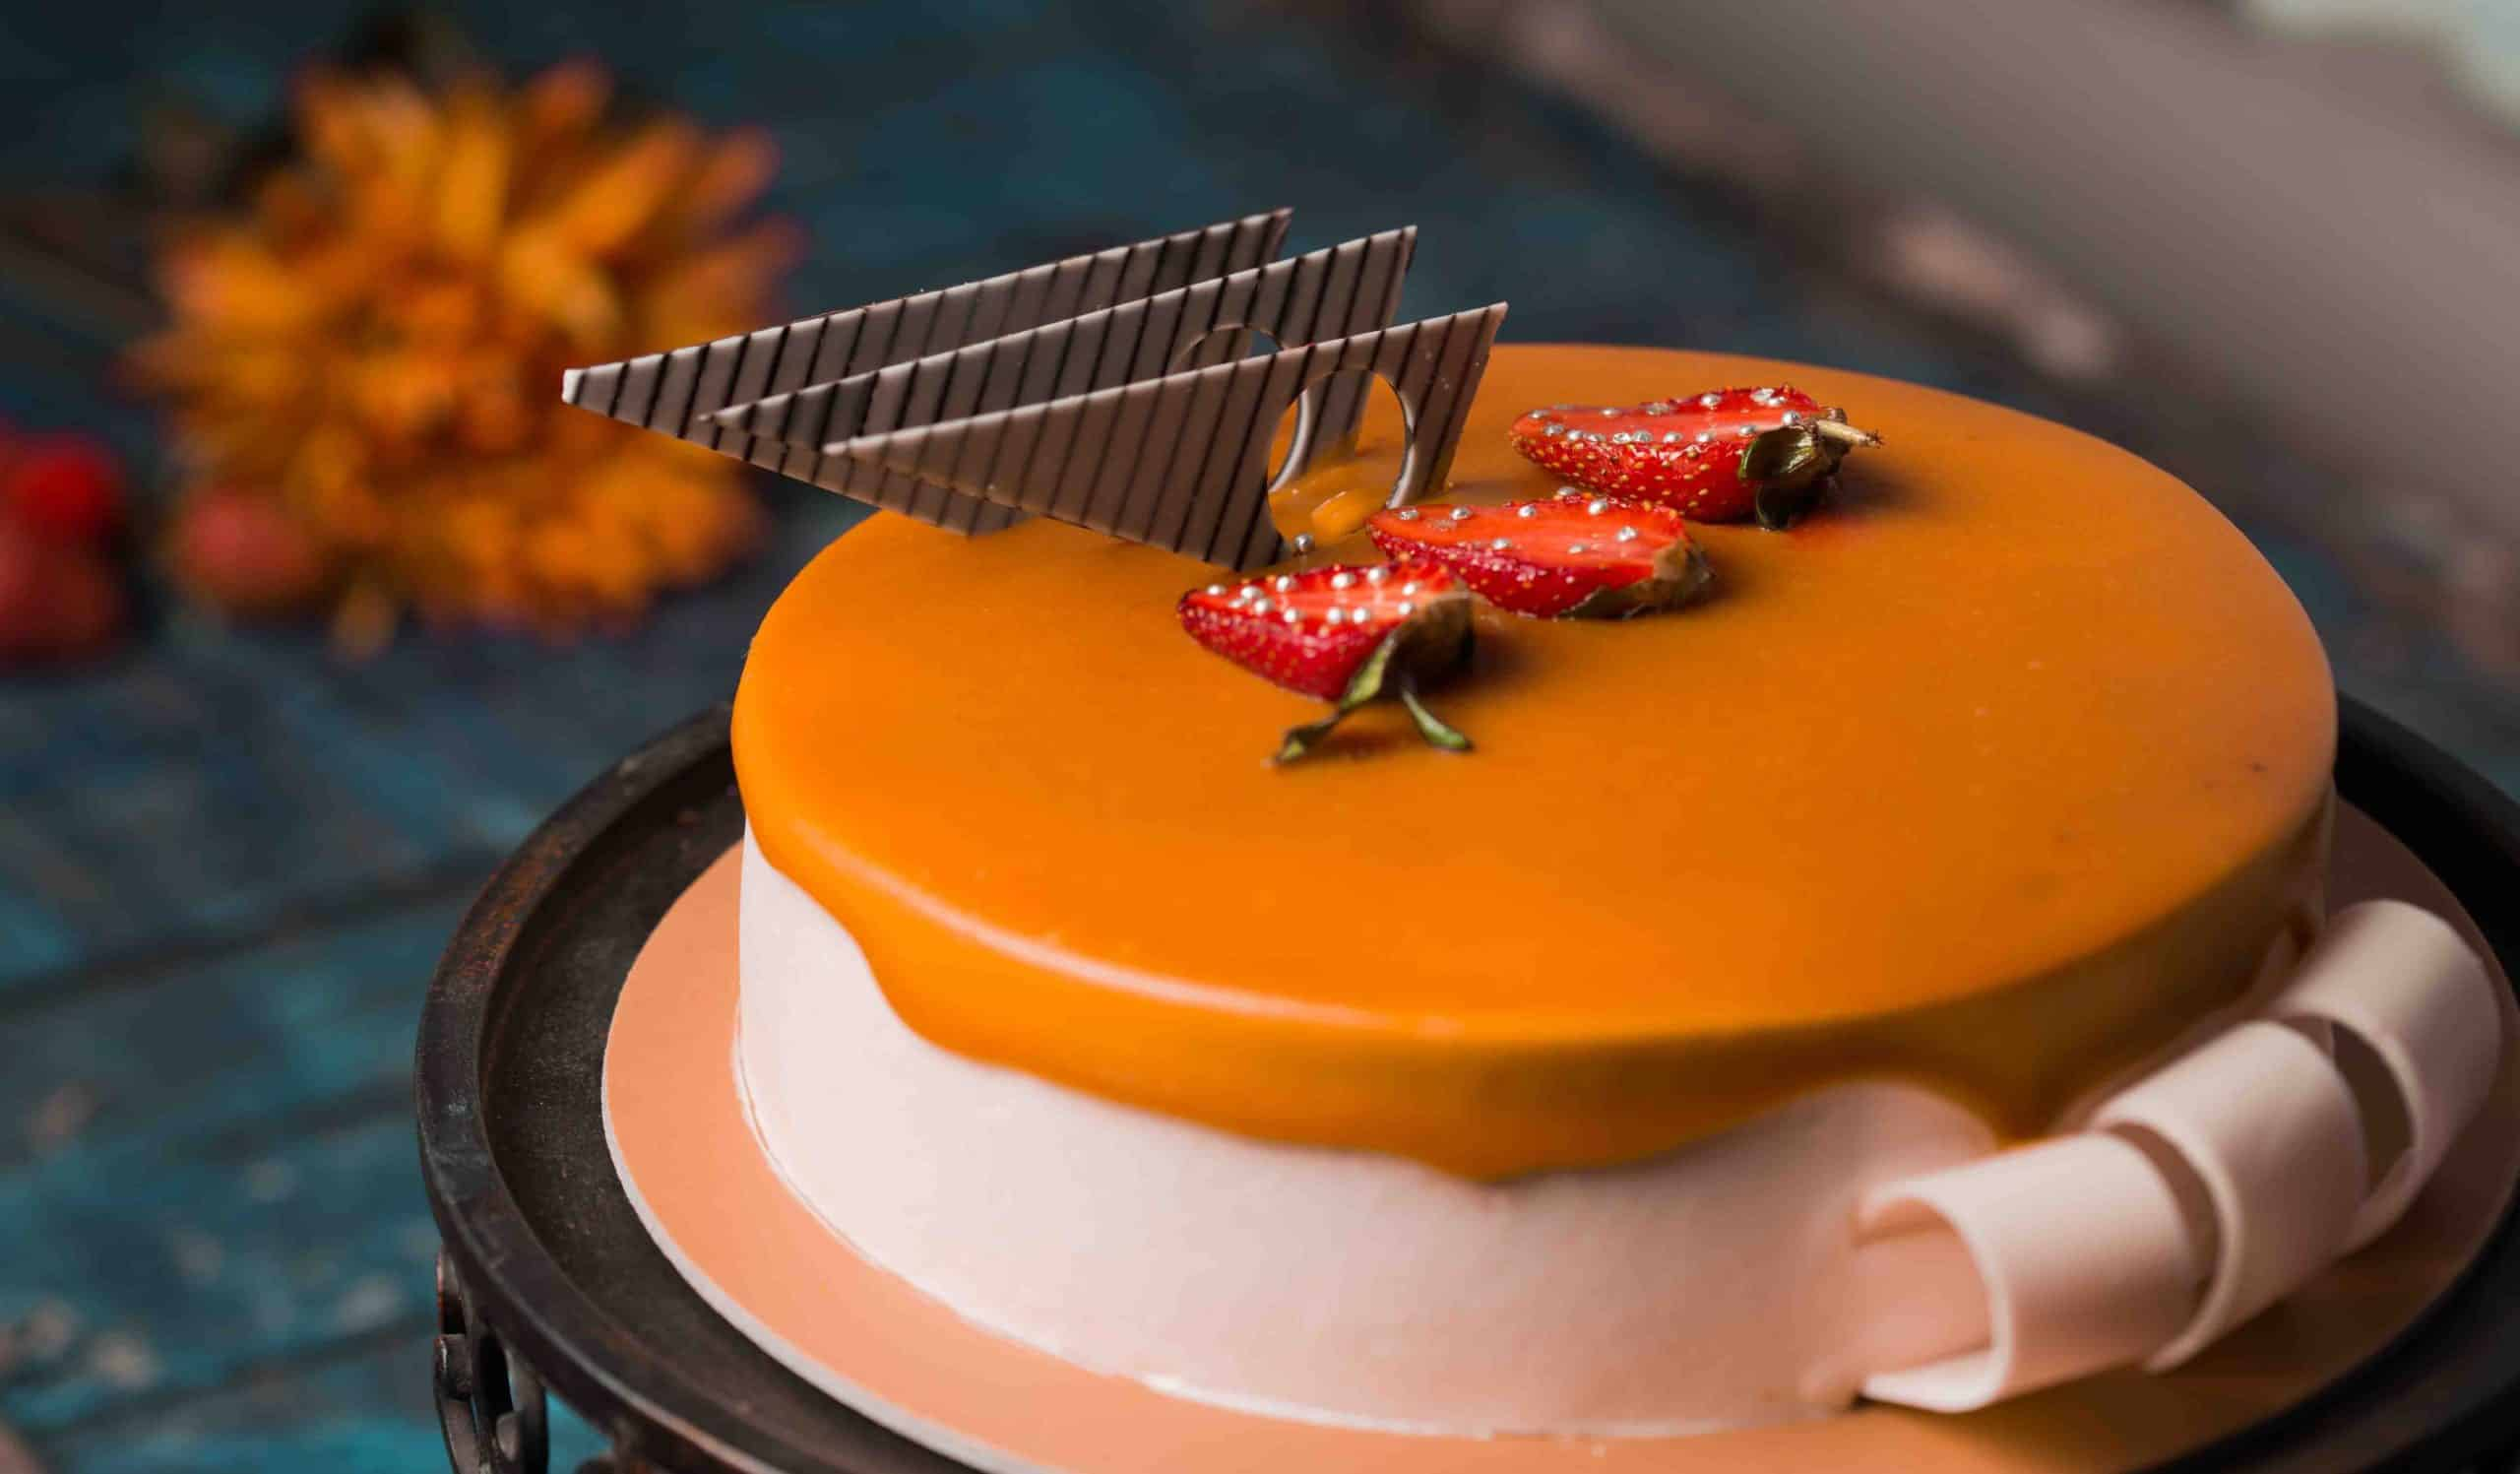 Cake Decorate: Know More About The Pastry Set